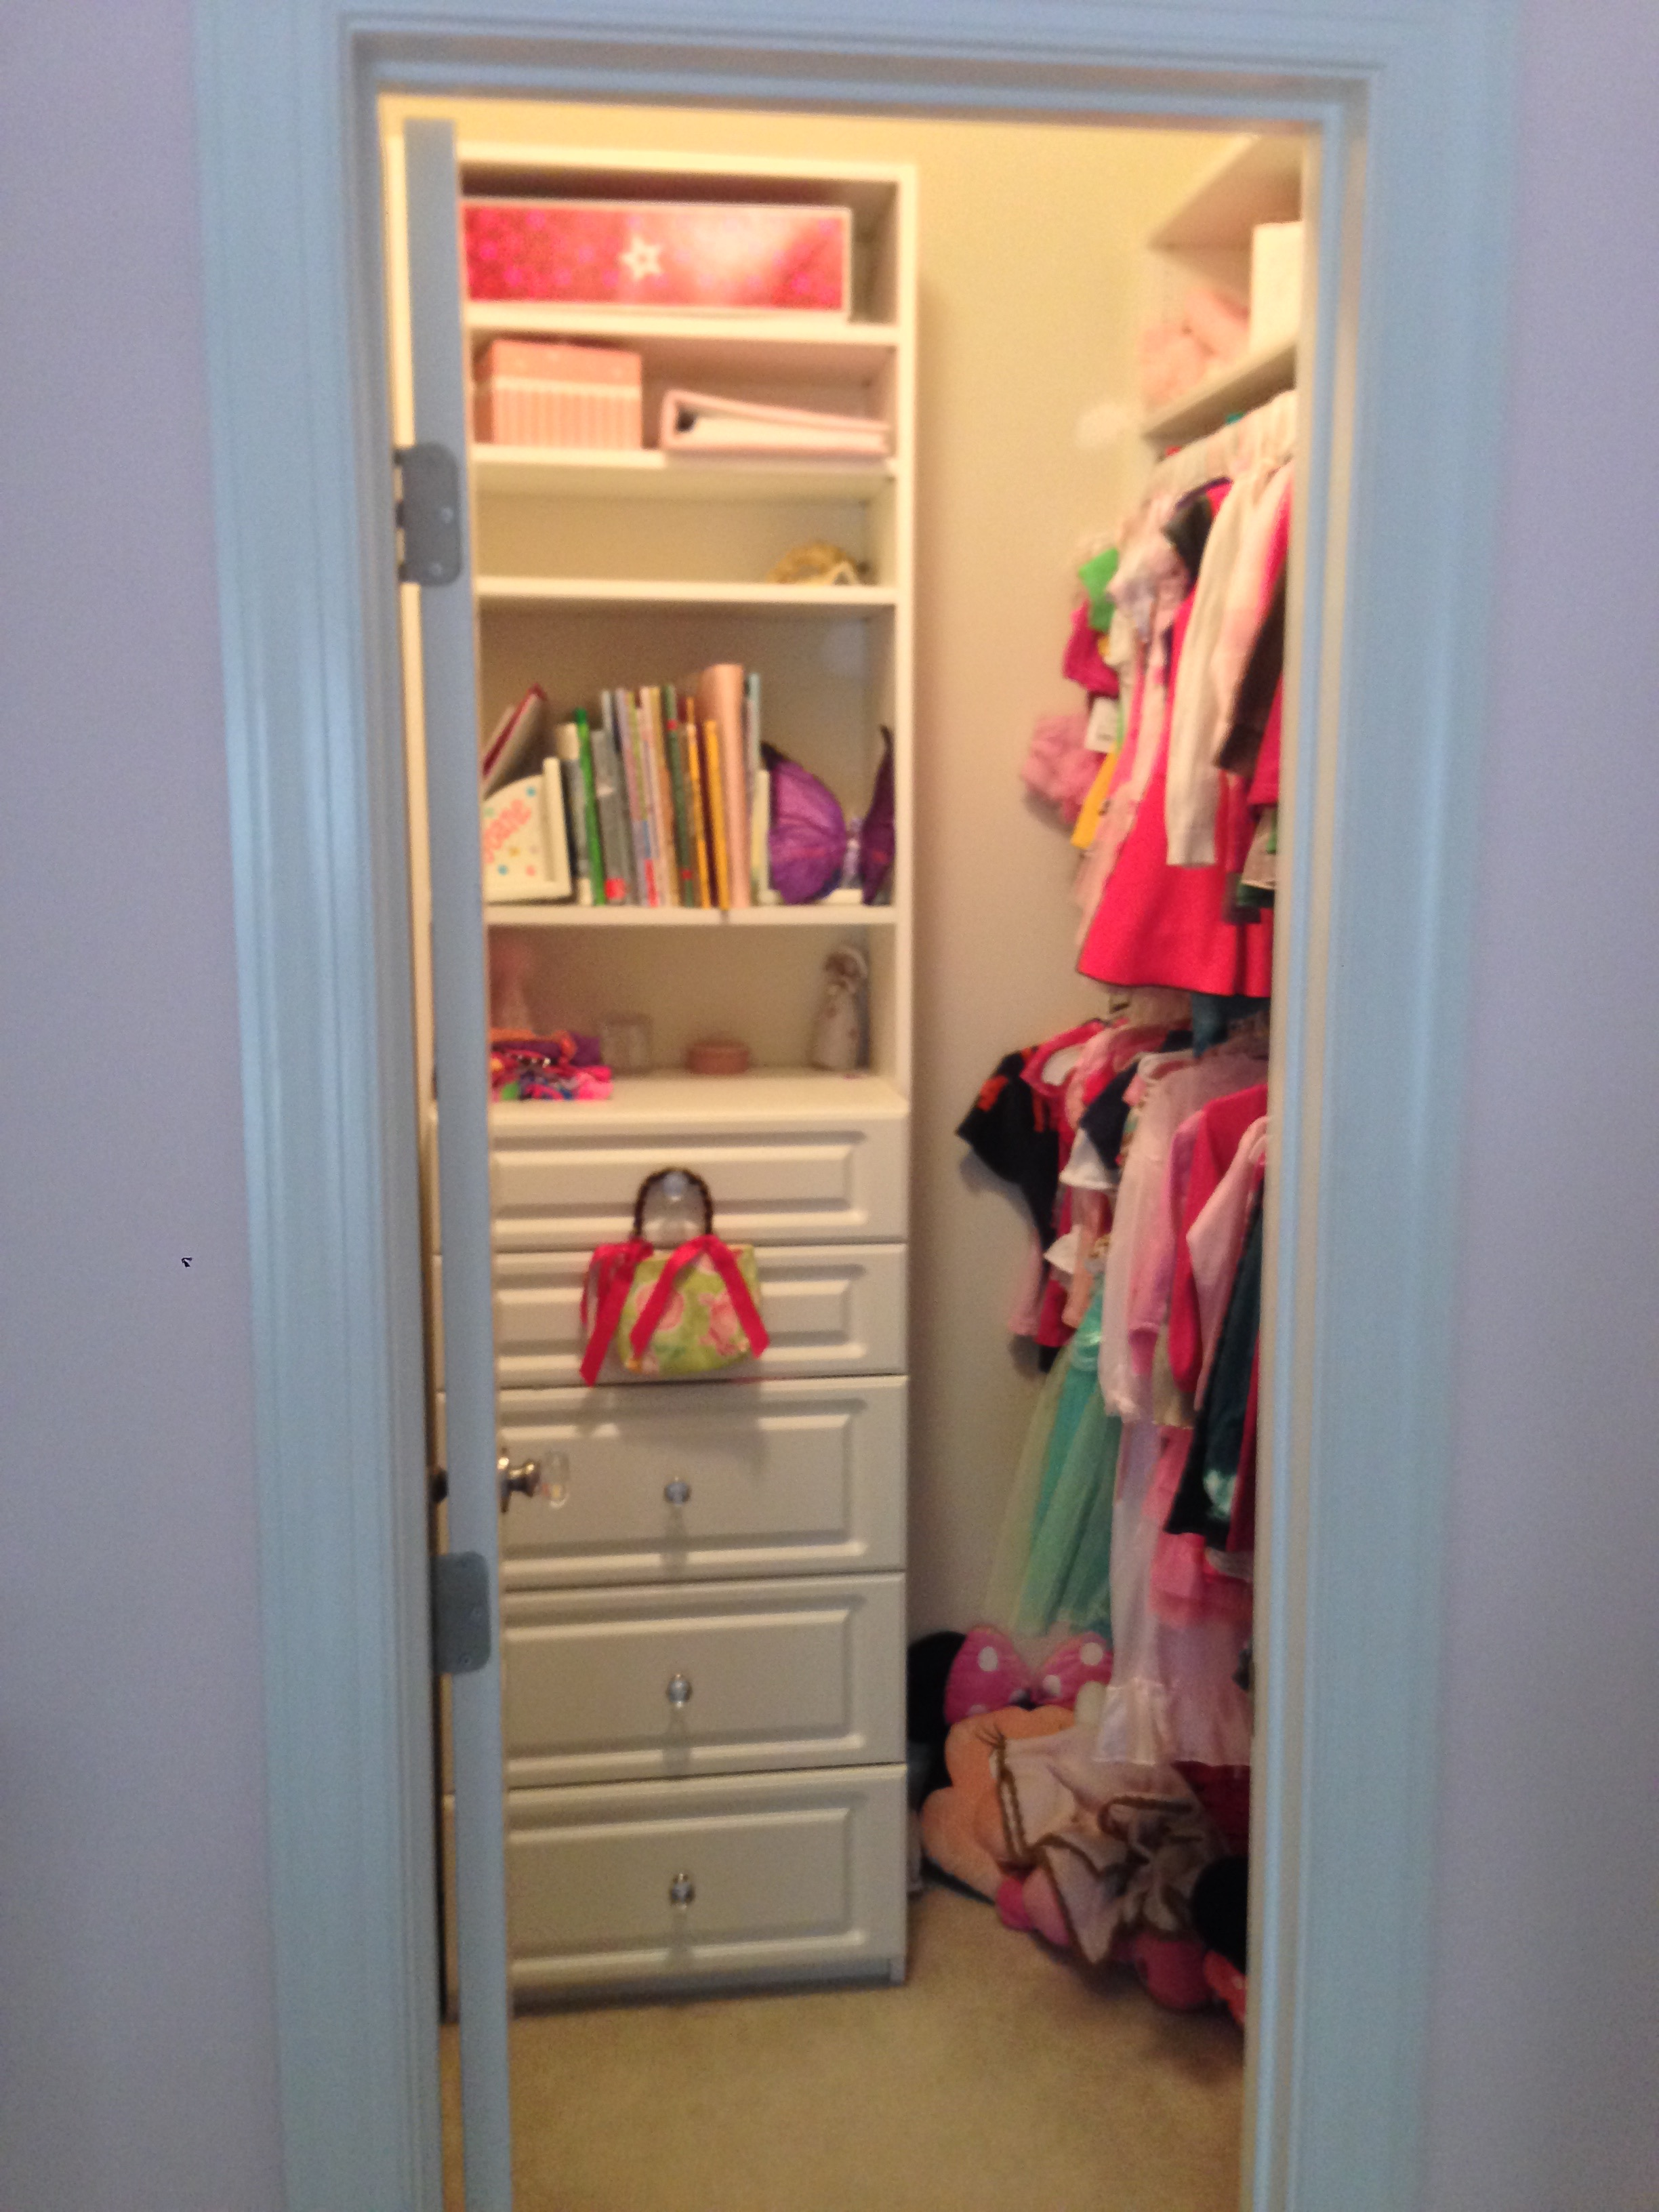 messy closets size pcok quick of l closet kids bedroom fixes your cost with wardrobe and full eclectic co remodel free for